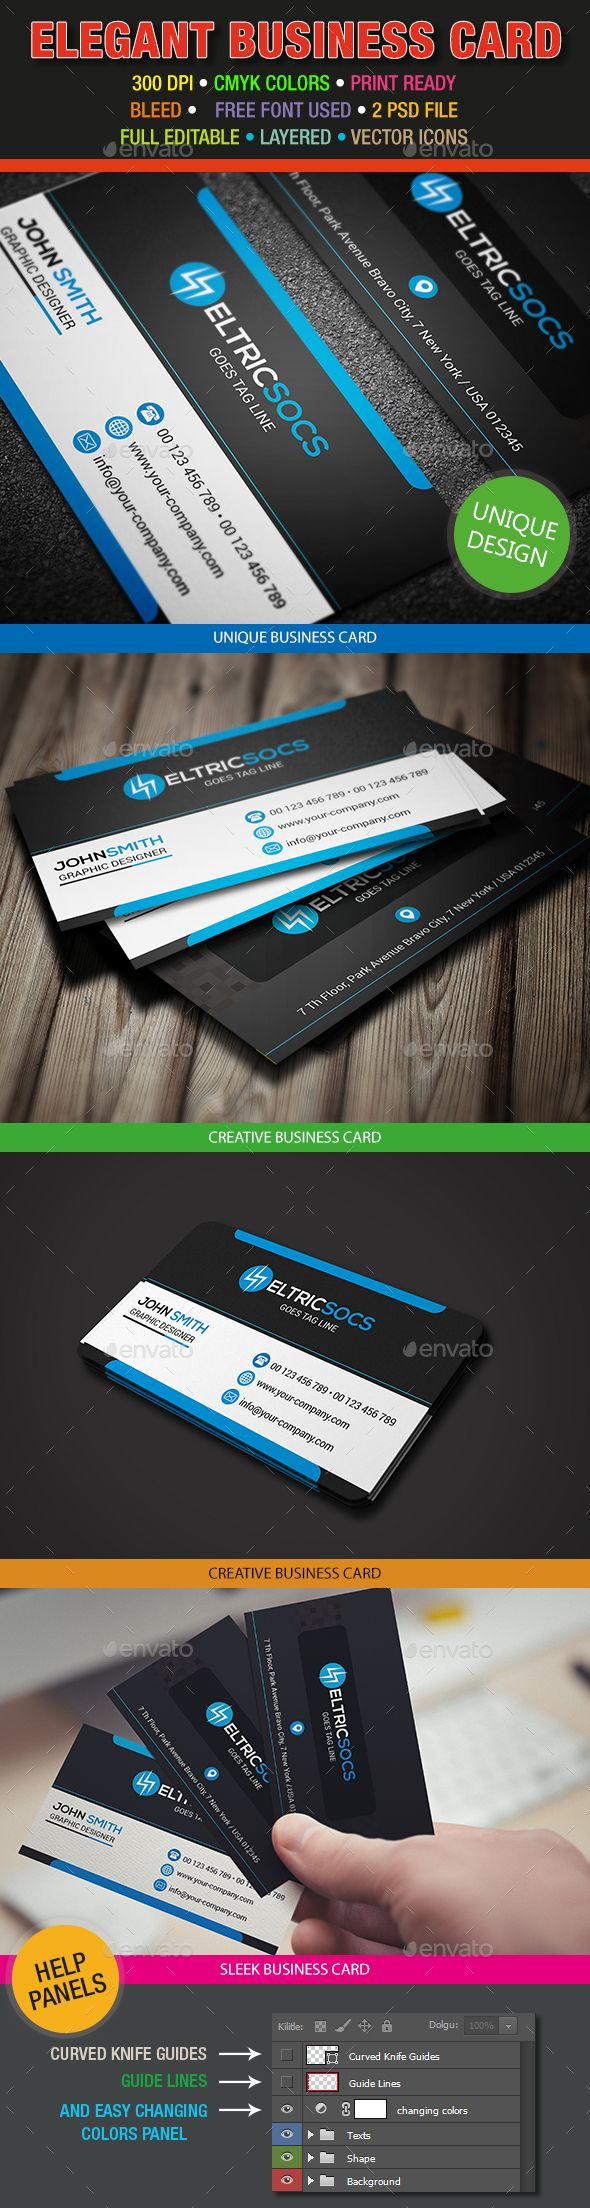 Travel business card templates gallery templates example free travel business card template business family tree templates 100 travel business card templates vector web and magicingreecefo Choice Image